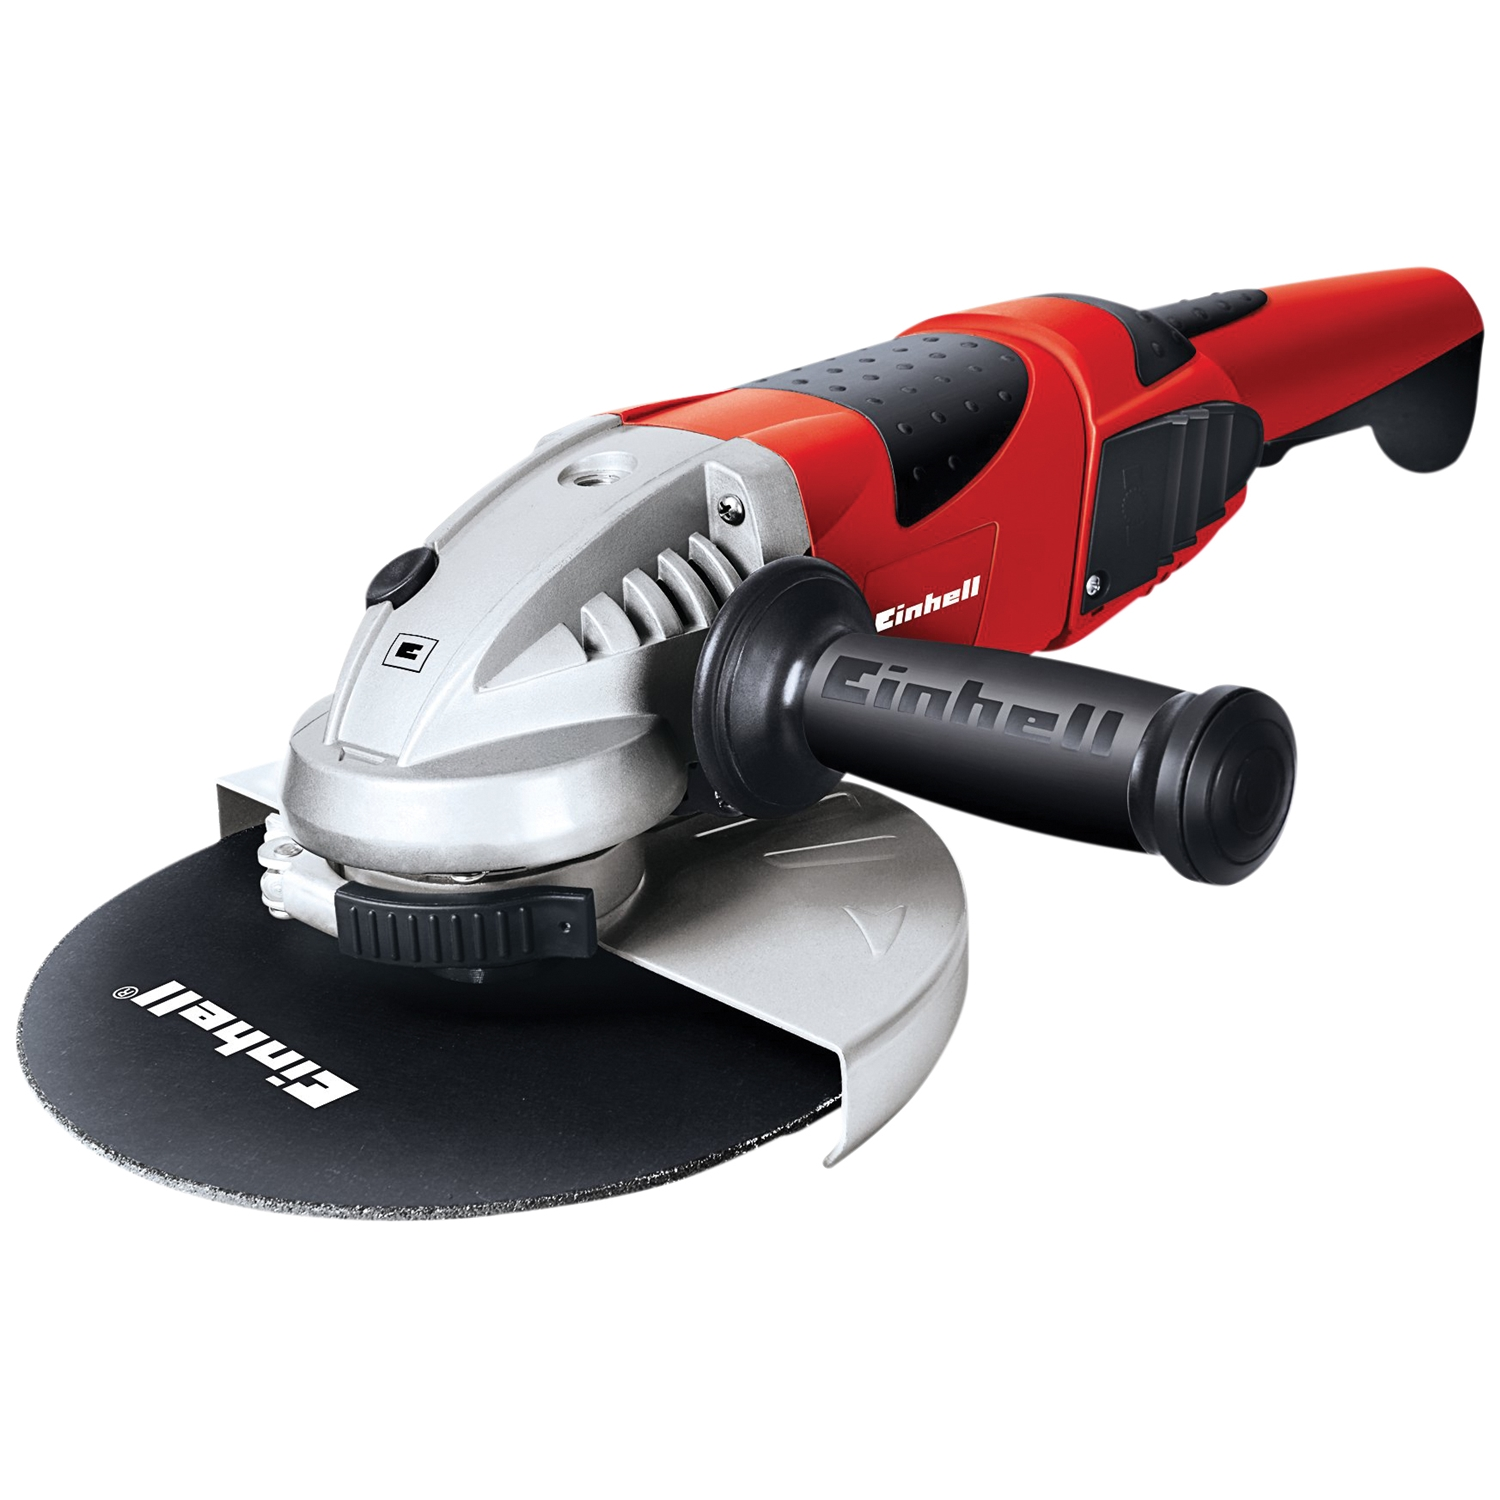 Image of Einhell Red 2000w Angle Grinder 230mm, Black